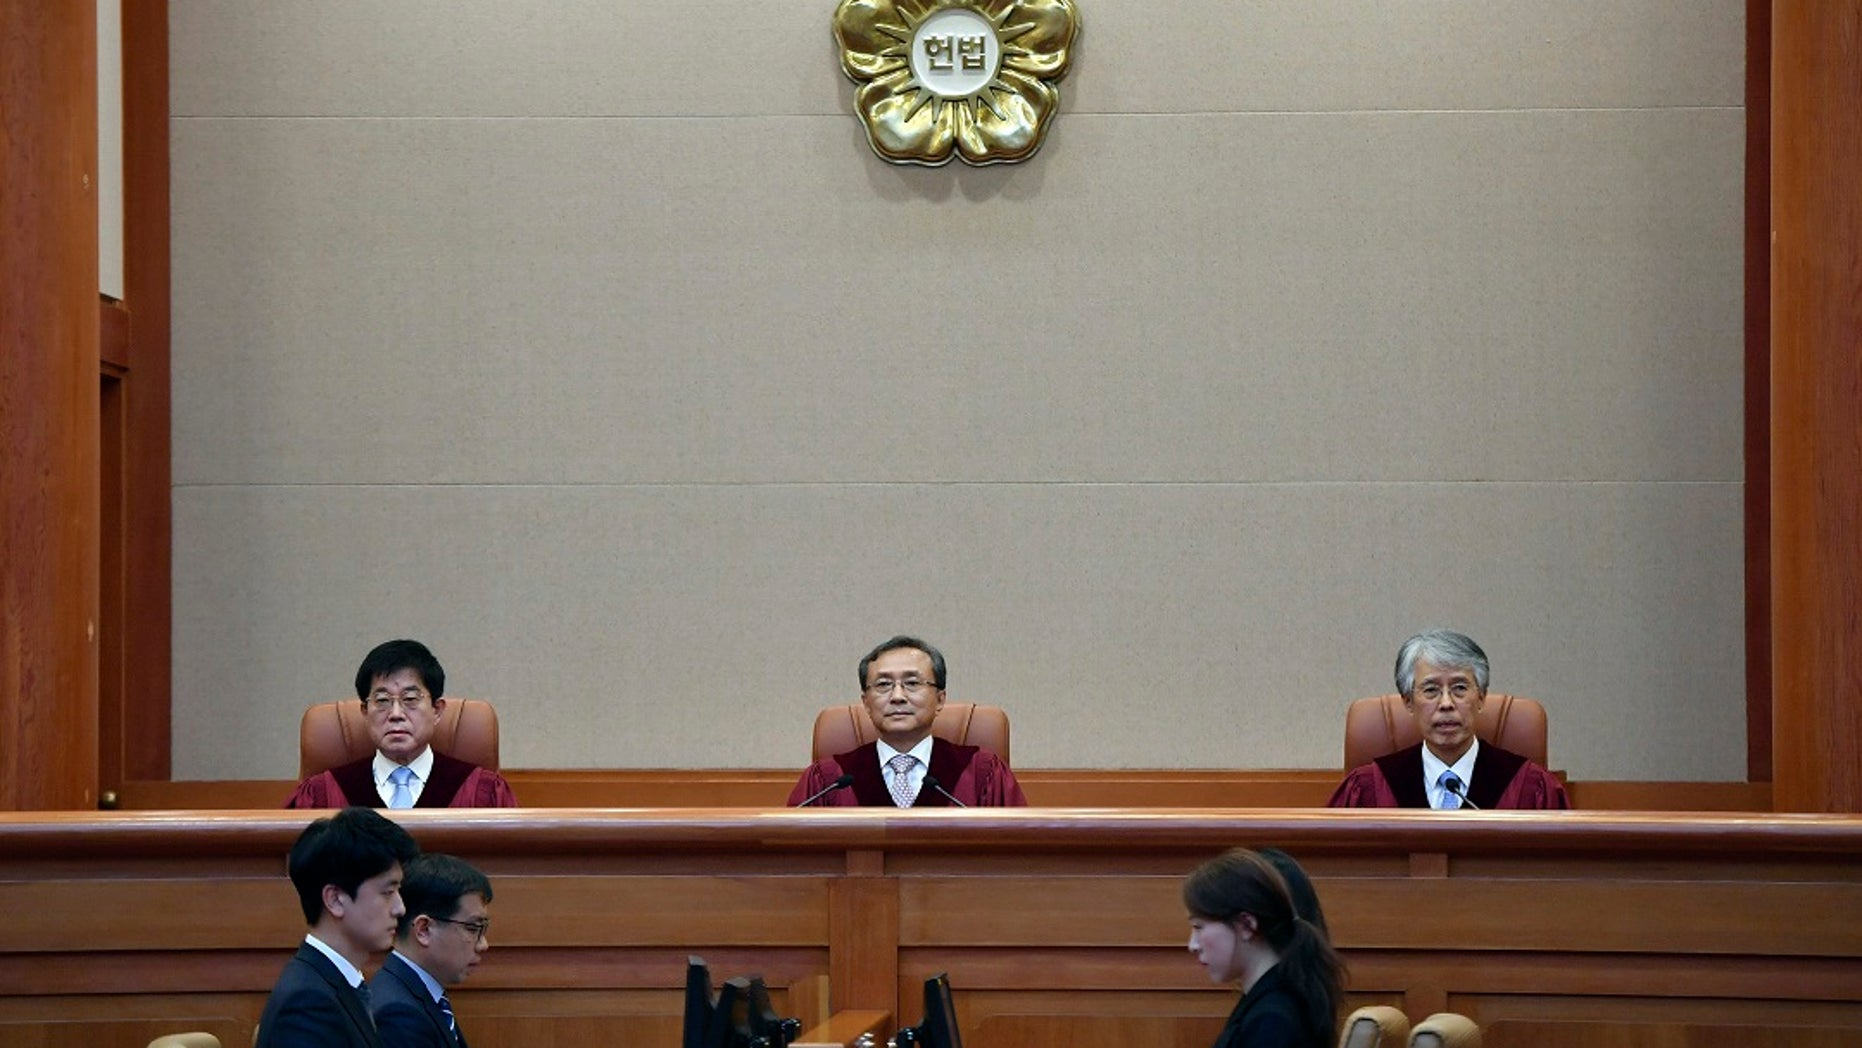 South Korean court strikes down decades-old law banning abortion